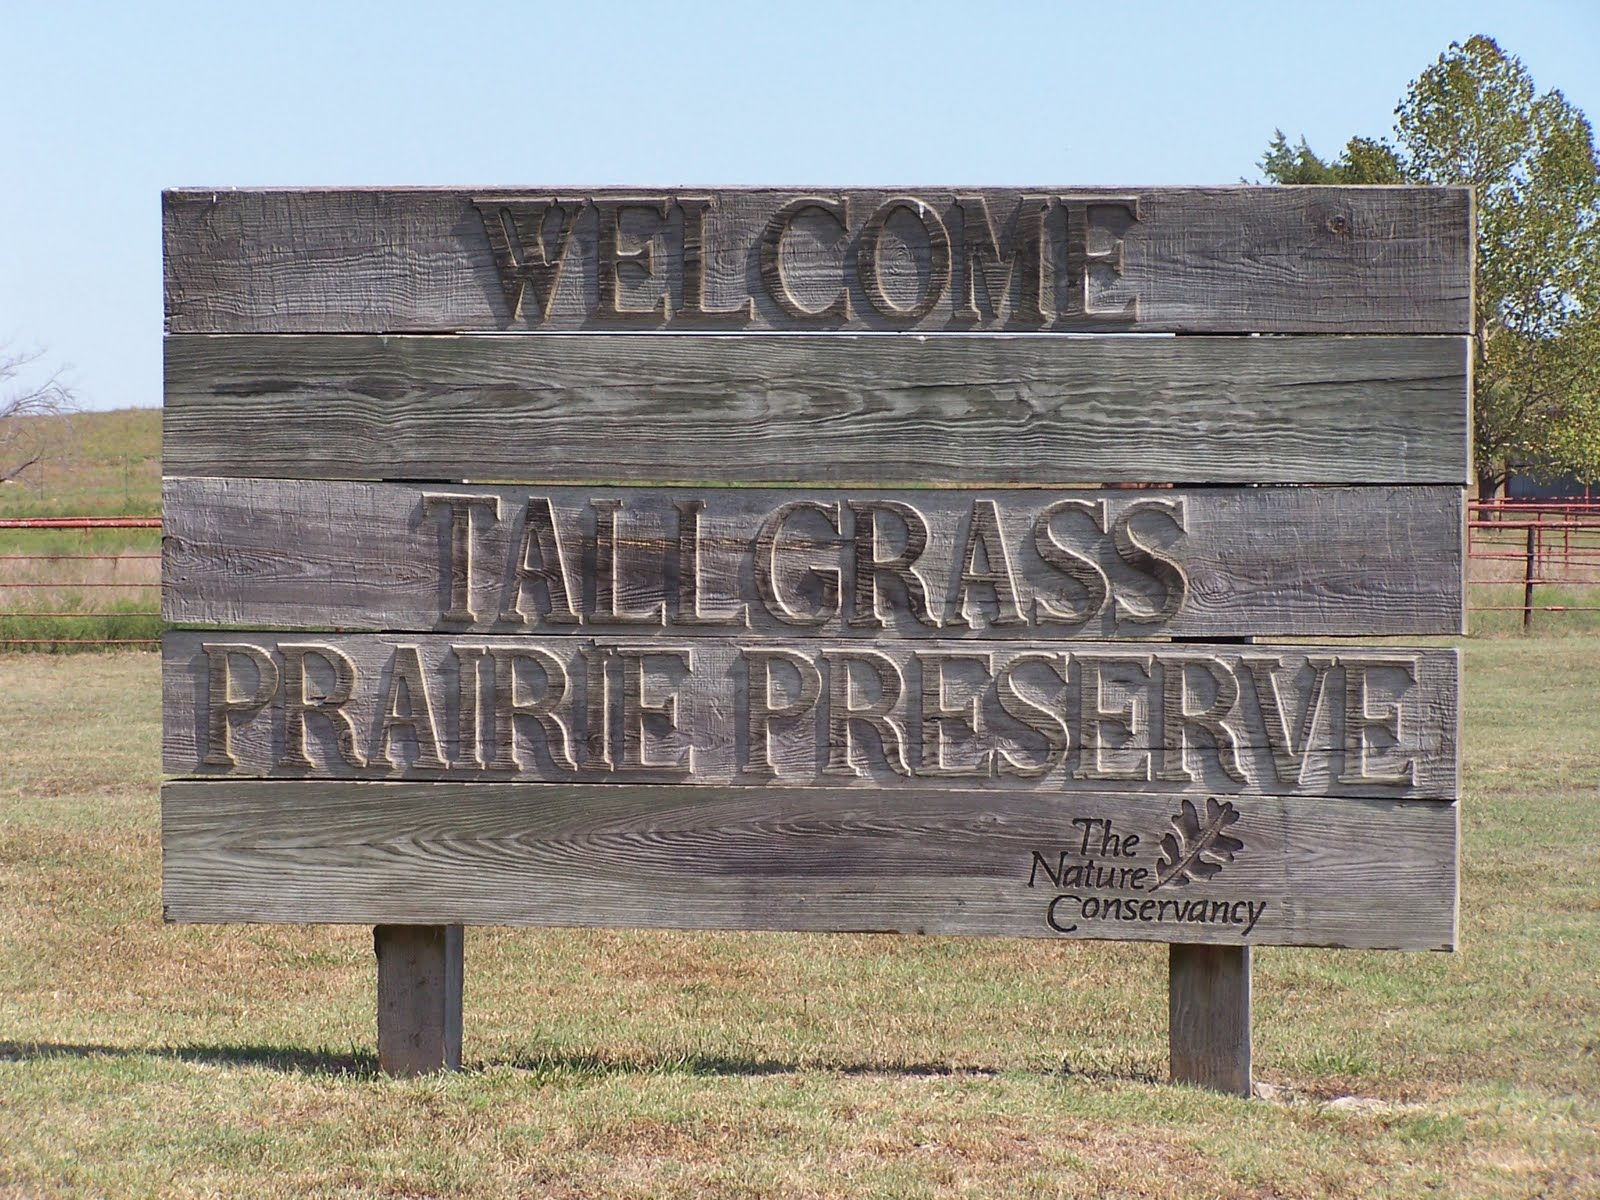 preservation of the tallgrass prairie Amazoncom description: product description: since its publication in 1982, where the sky began has become a landmark in environmental literaturemuch of today's interest in the preservation of native grasslands was sparked by this classic work.